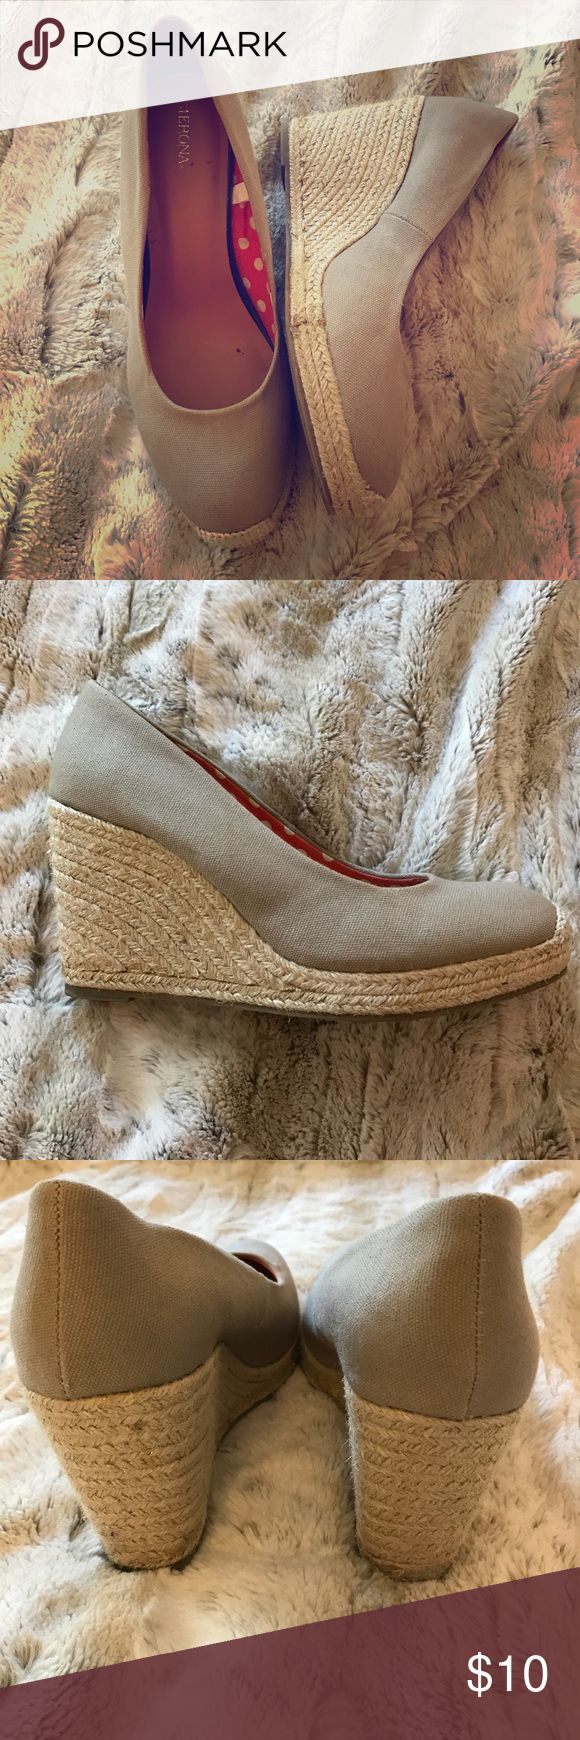 Tan and gold espadrilles Gently used. Tan espadrilles with gold accent. Perfect for a fun and casual summer event. Size 10 but runs a tad big. Merona Shoes Espadrilles